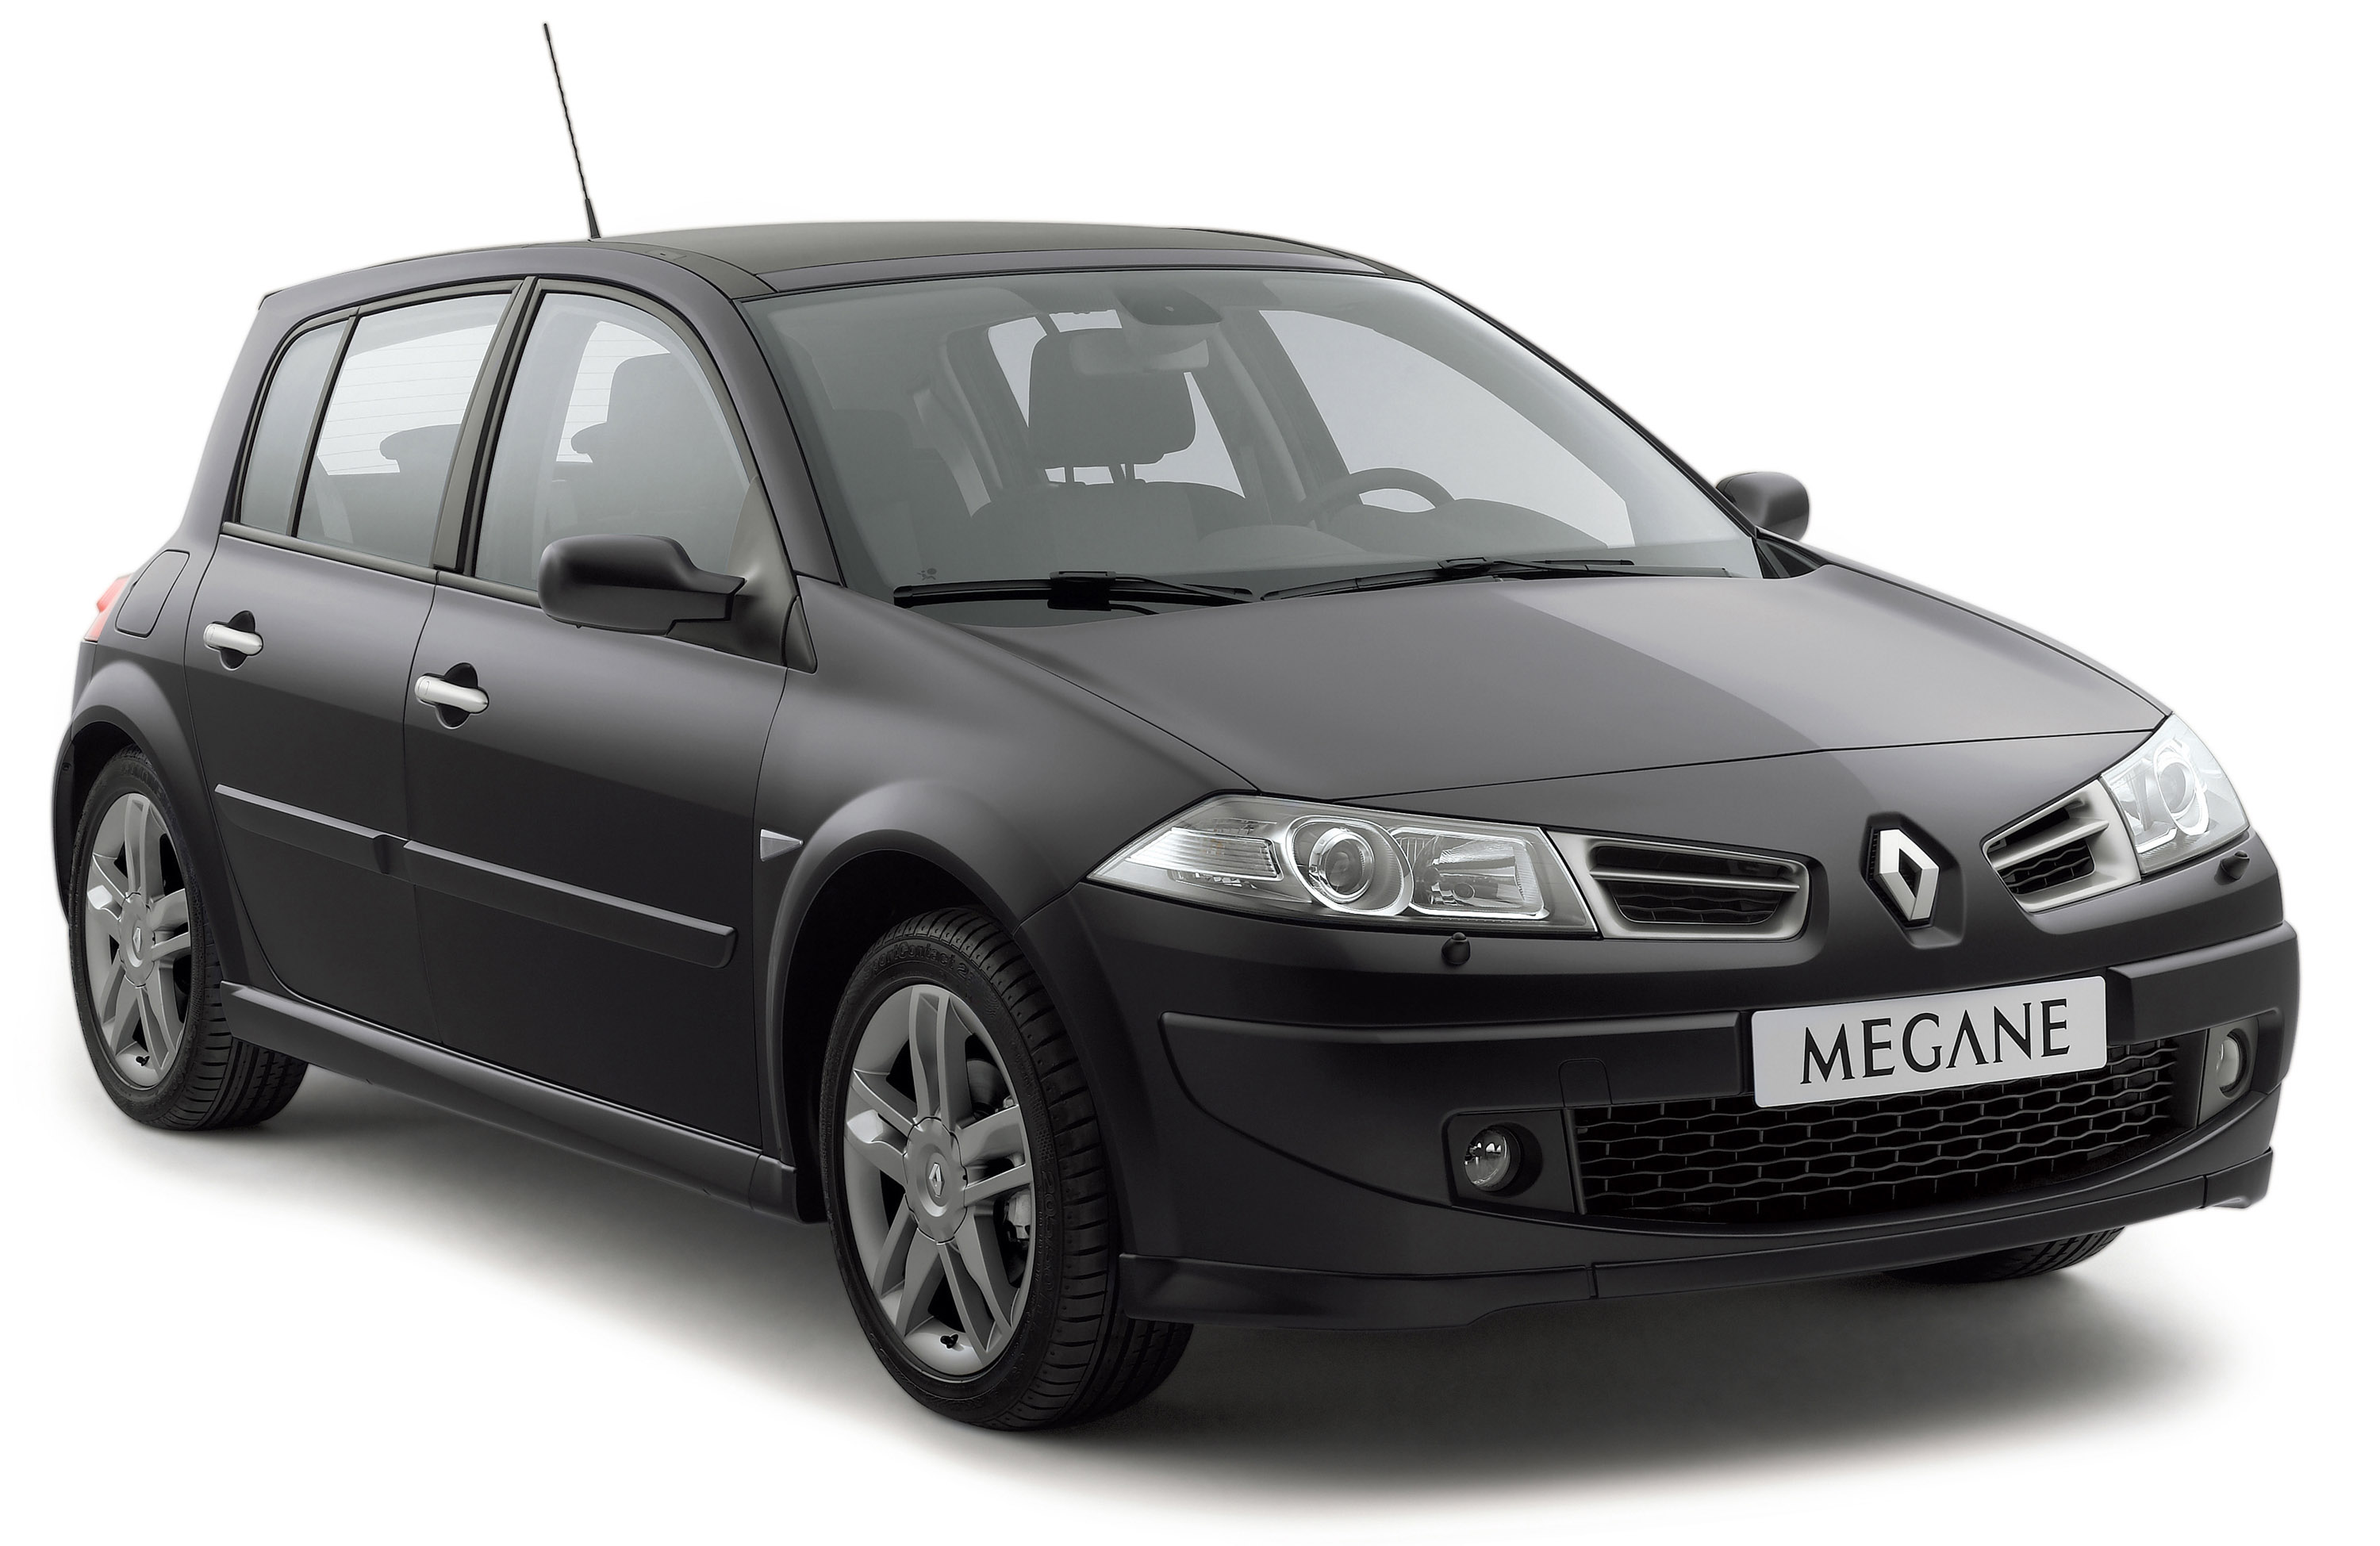 renault megane gt picture 8080. Black Bedroom Furniture Sets. Home Design Ideas